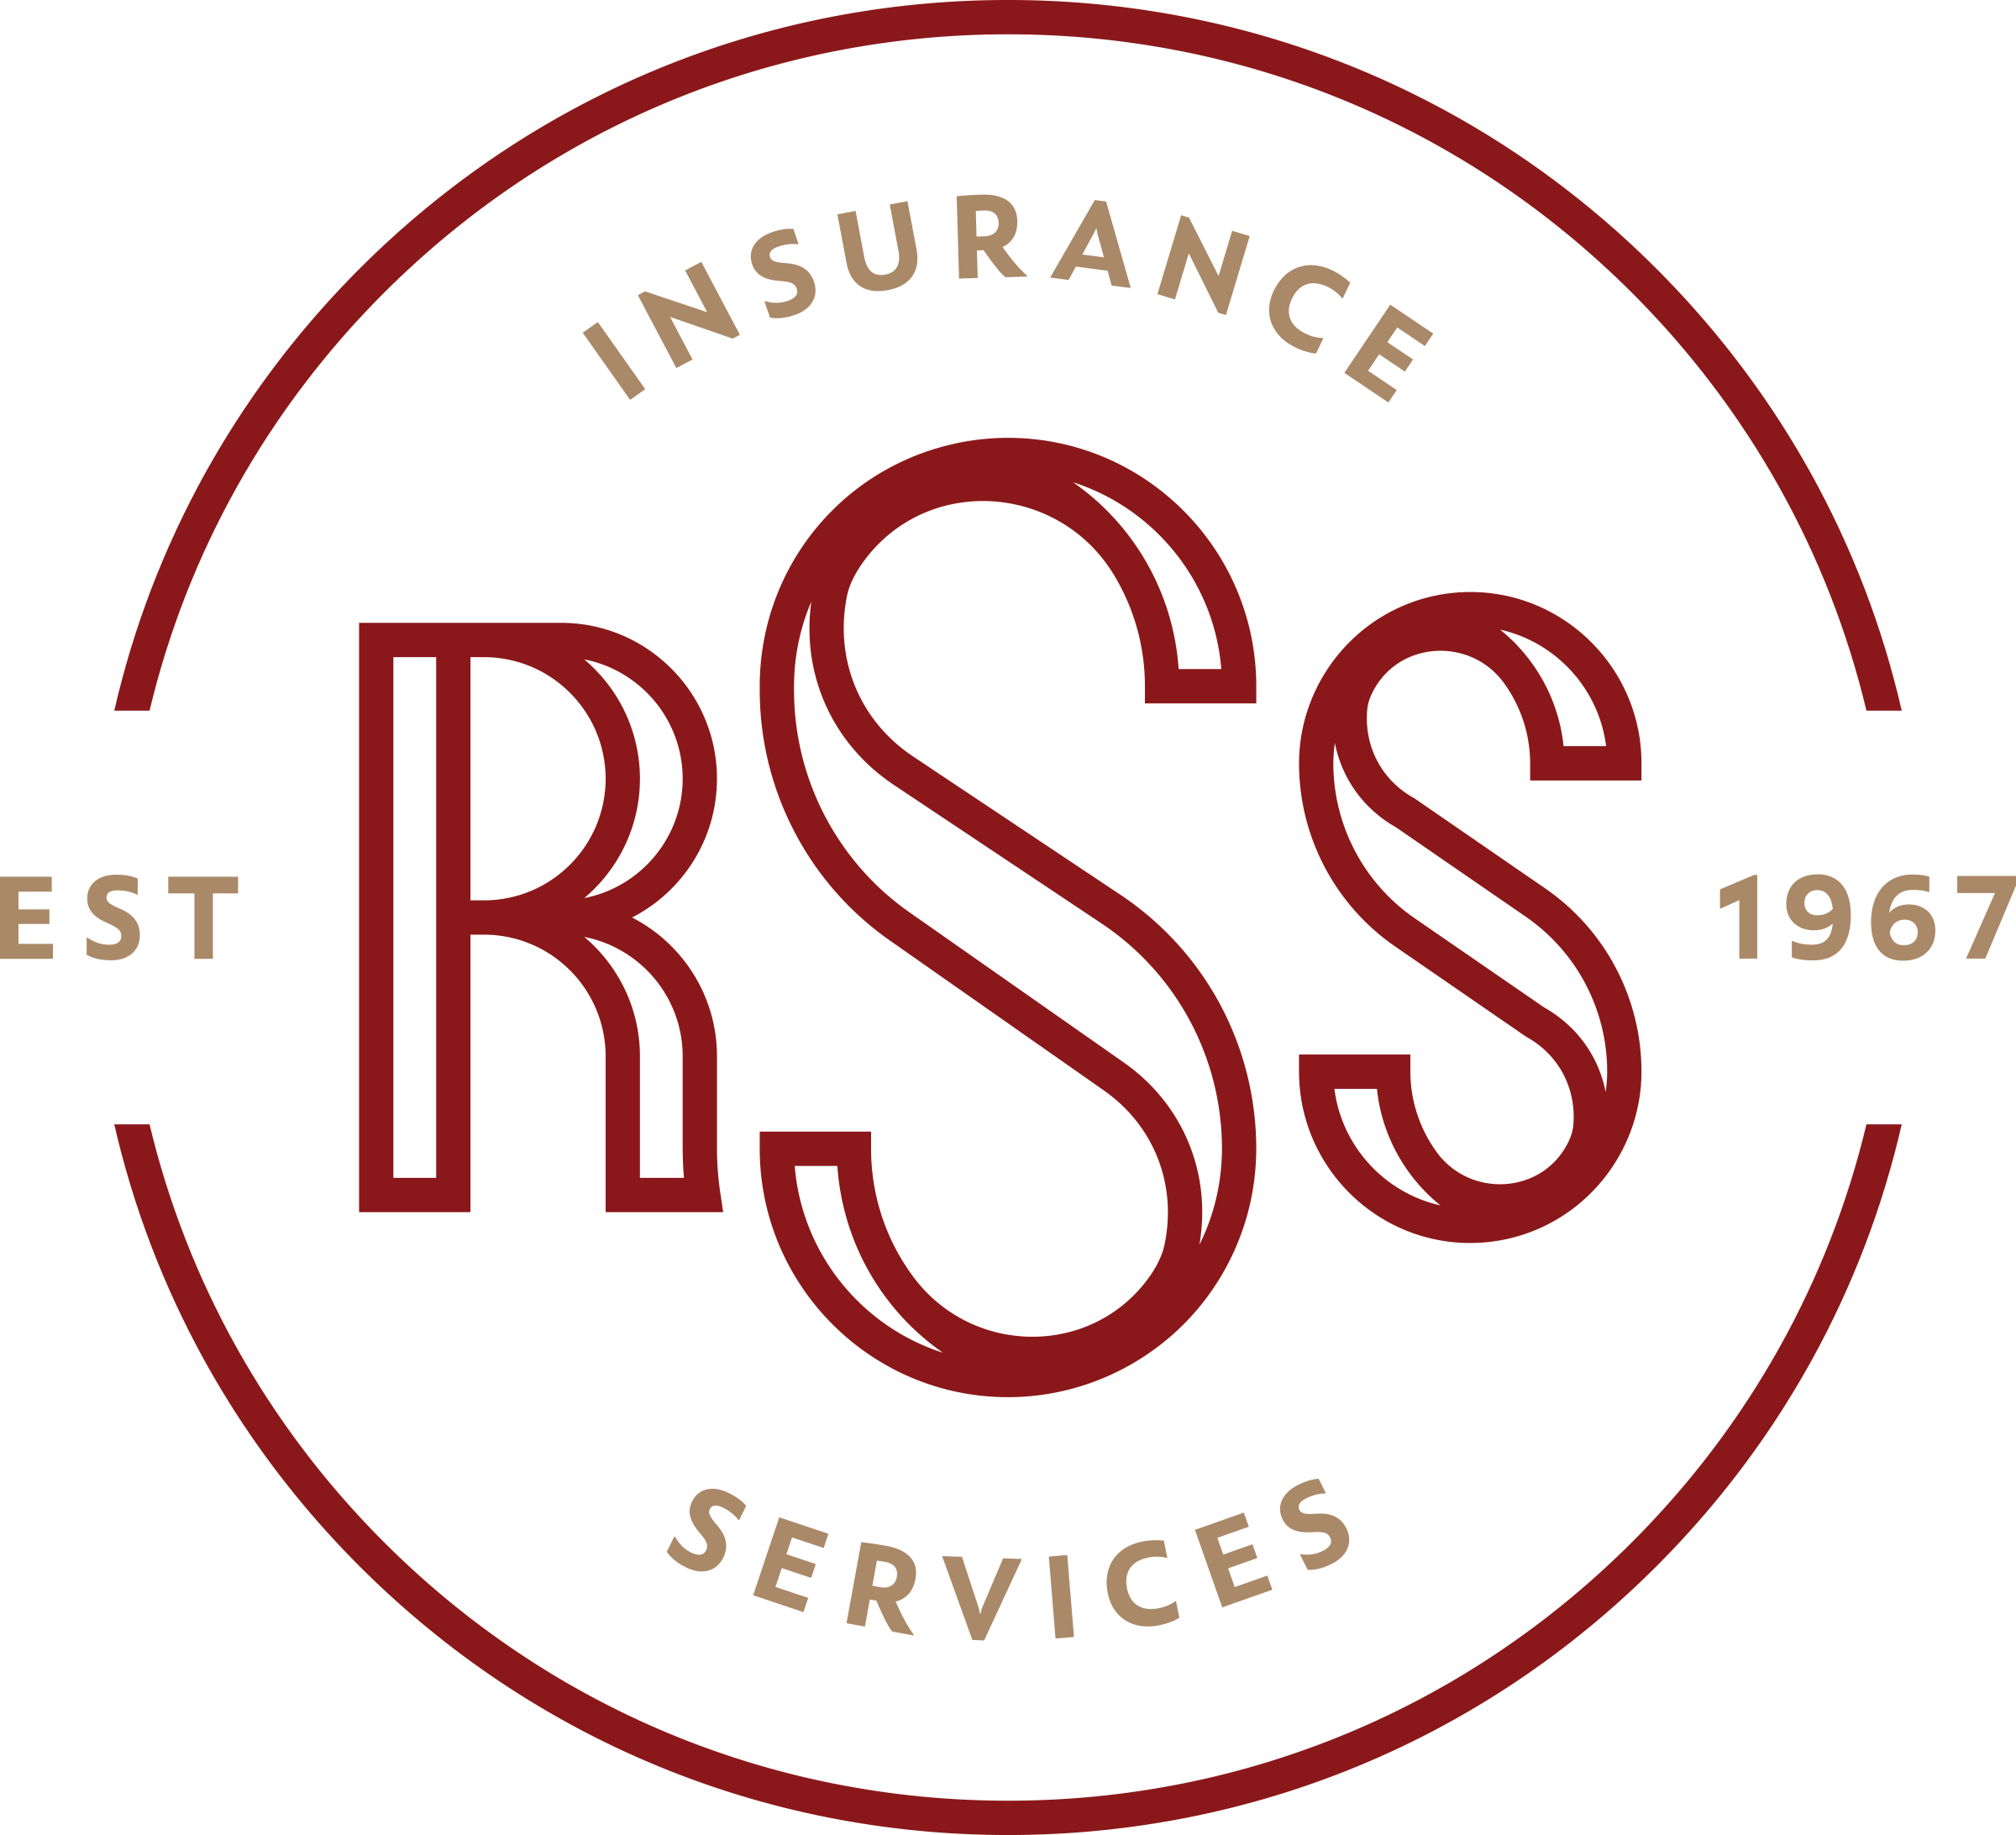 RSS Insurance Services Inc.